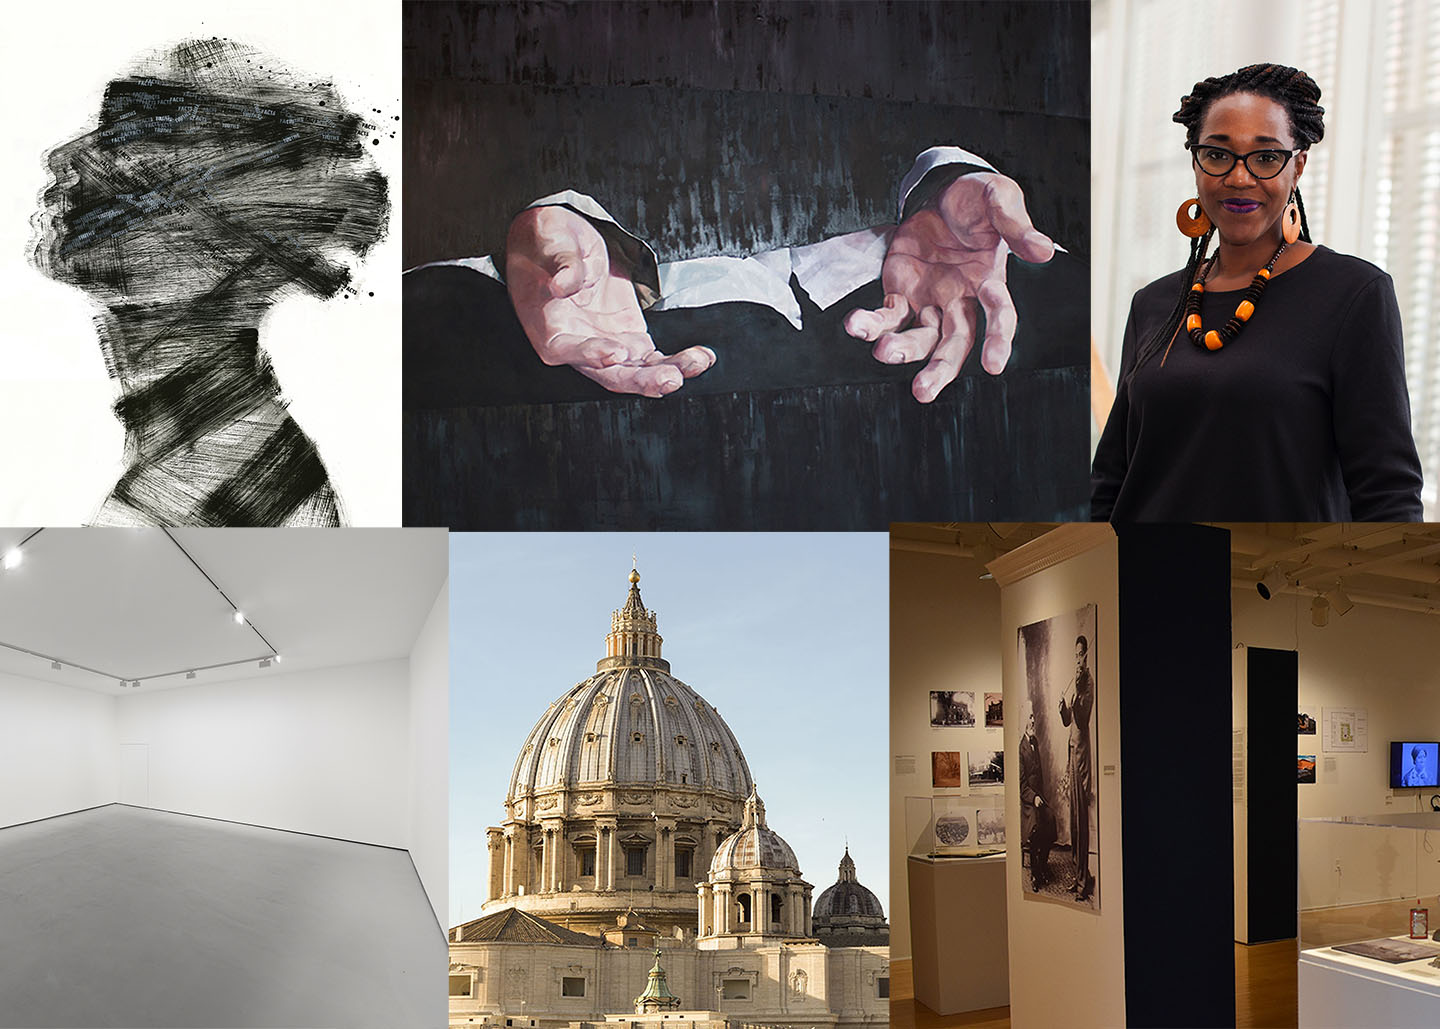 collage of images: woman in profile made up of black ink marks; painting of two hands with black background; head shot of Nikki Greene; empty gallery space; photo of St. Peter's Basilica dome; photo of gallery exhibition